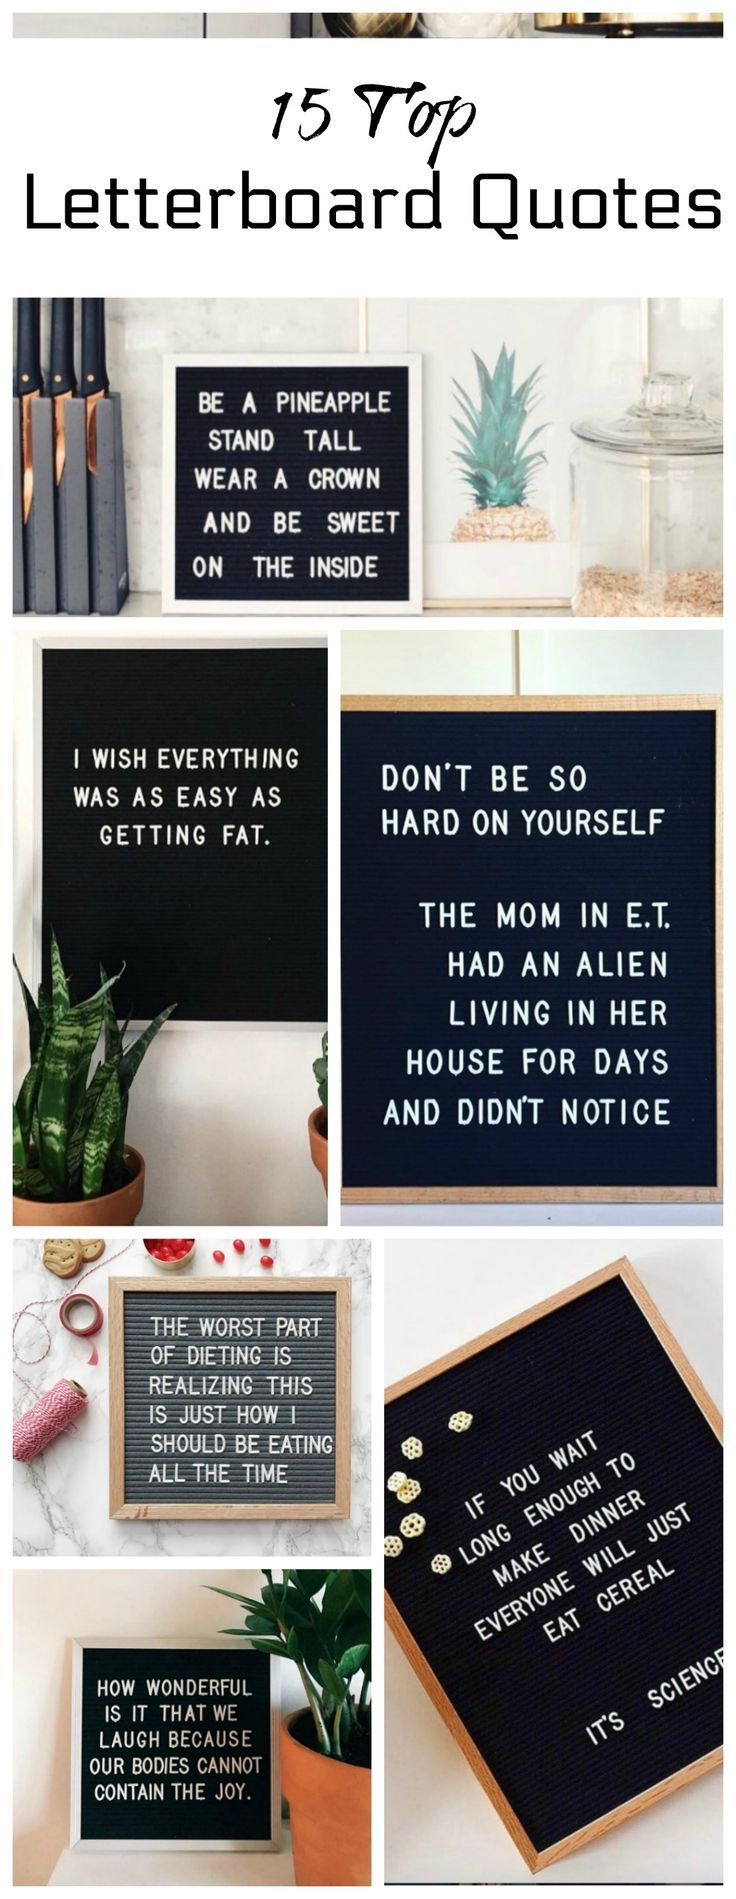 Funny Board Quotes : funny, board, quotes, Corona:, Kitchen, Board, Ideas, Inspirational, Quotes,, Words,, Words, Wisdom